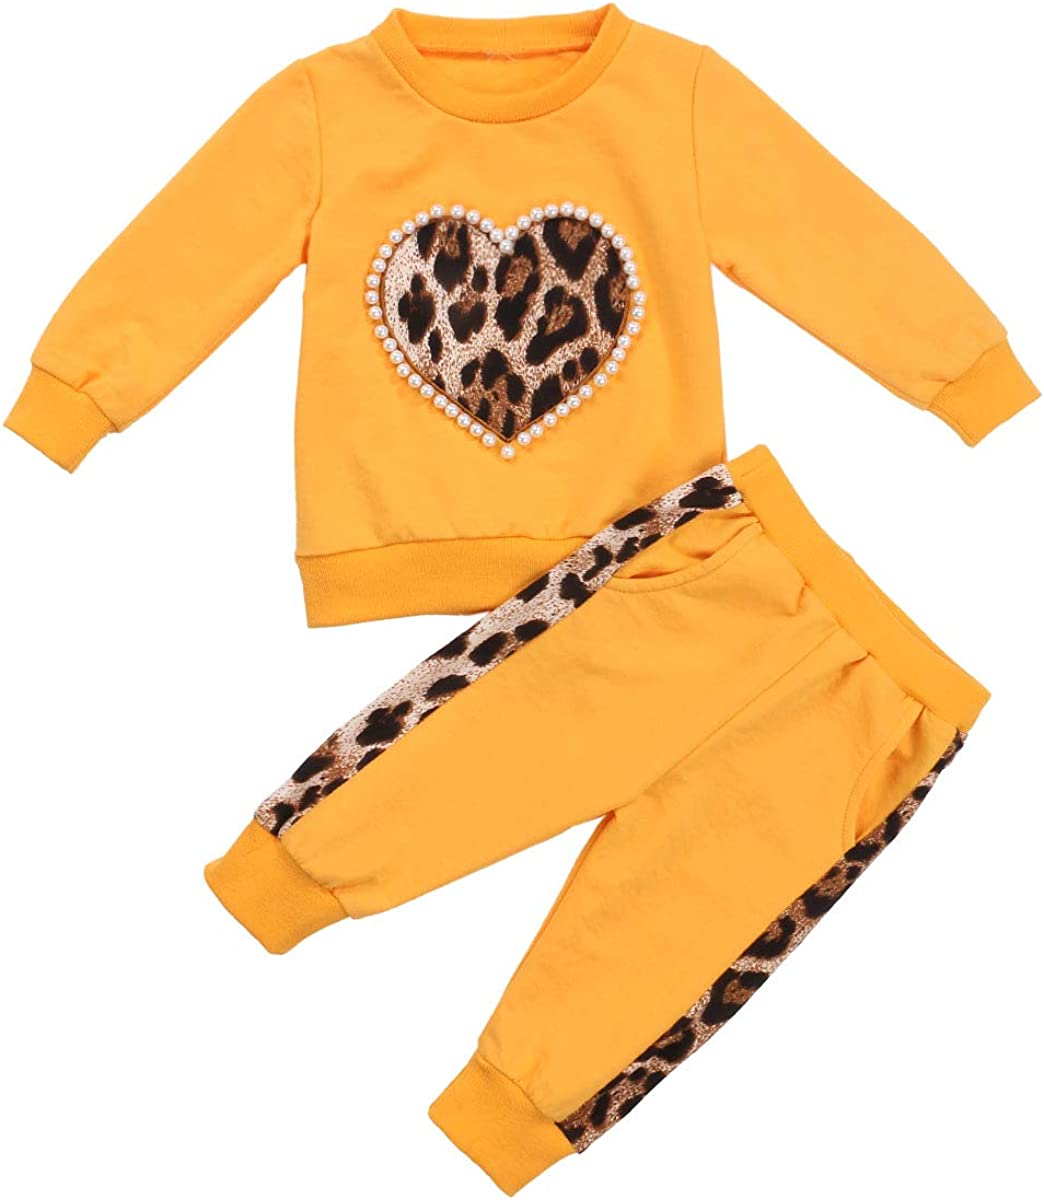 2Pcs Toddler Baby Girl Fall Clothes Leopard Long Sleeve Sweatshirt T-Shirt Tops Pants Set Sweatsuit Outfits